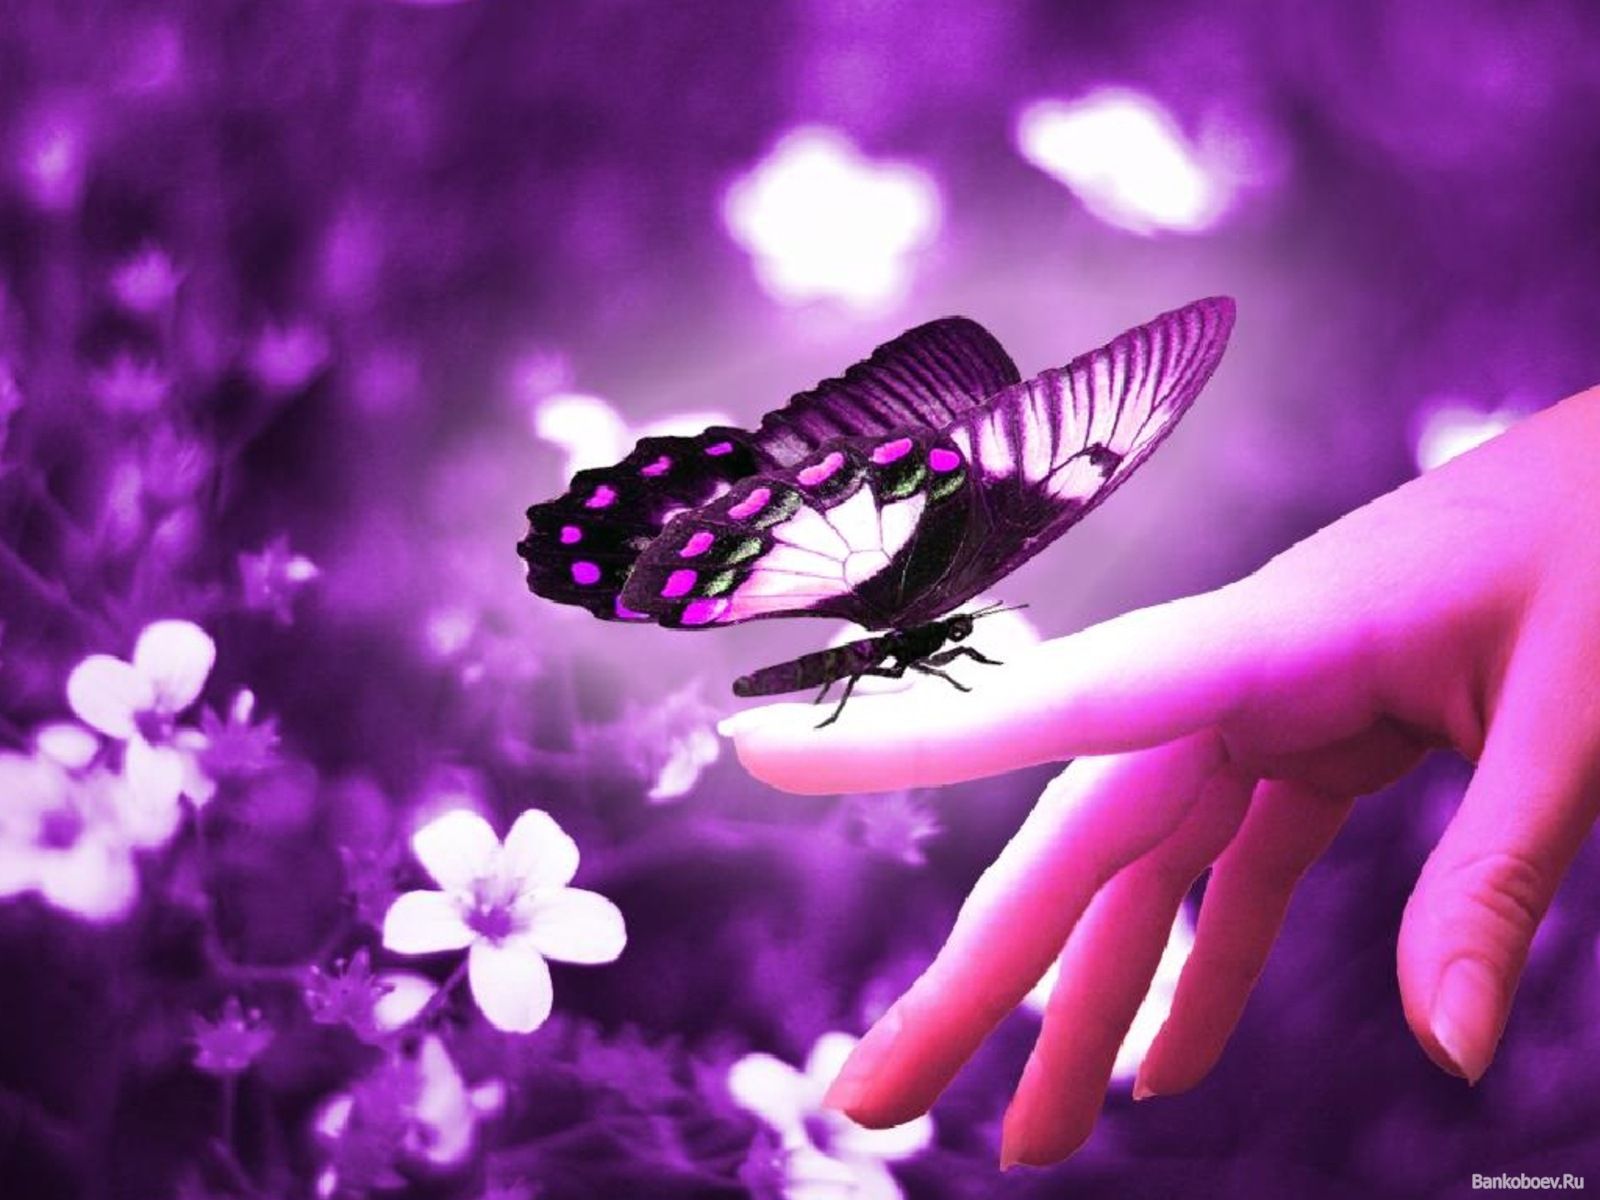 Cute Butterfly in Purple   Computer Screen Saver PC 1600x1200